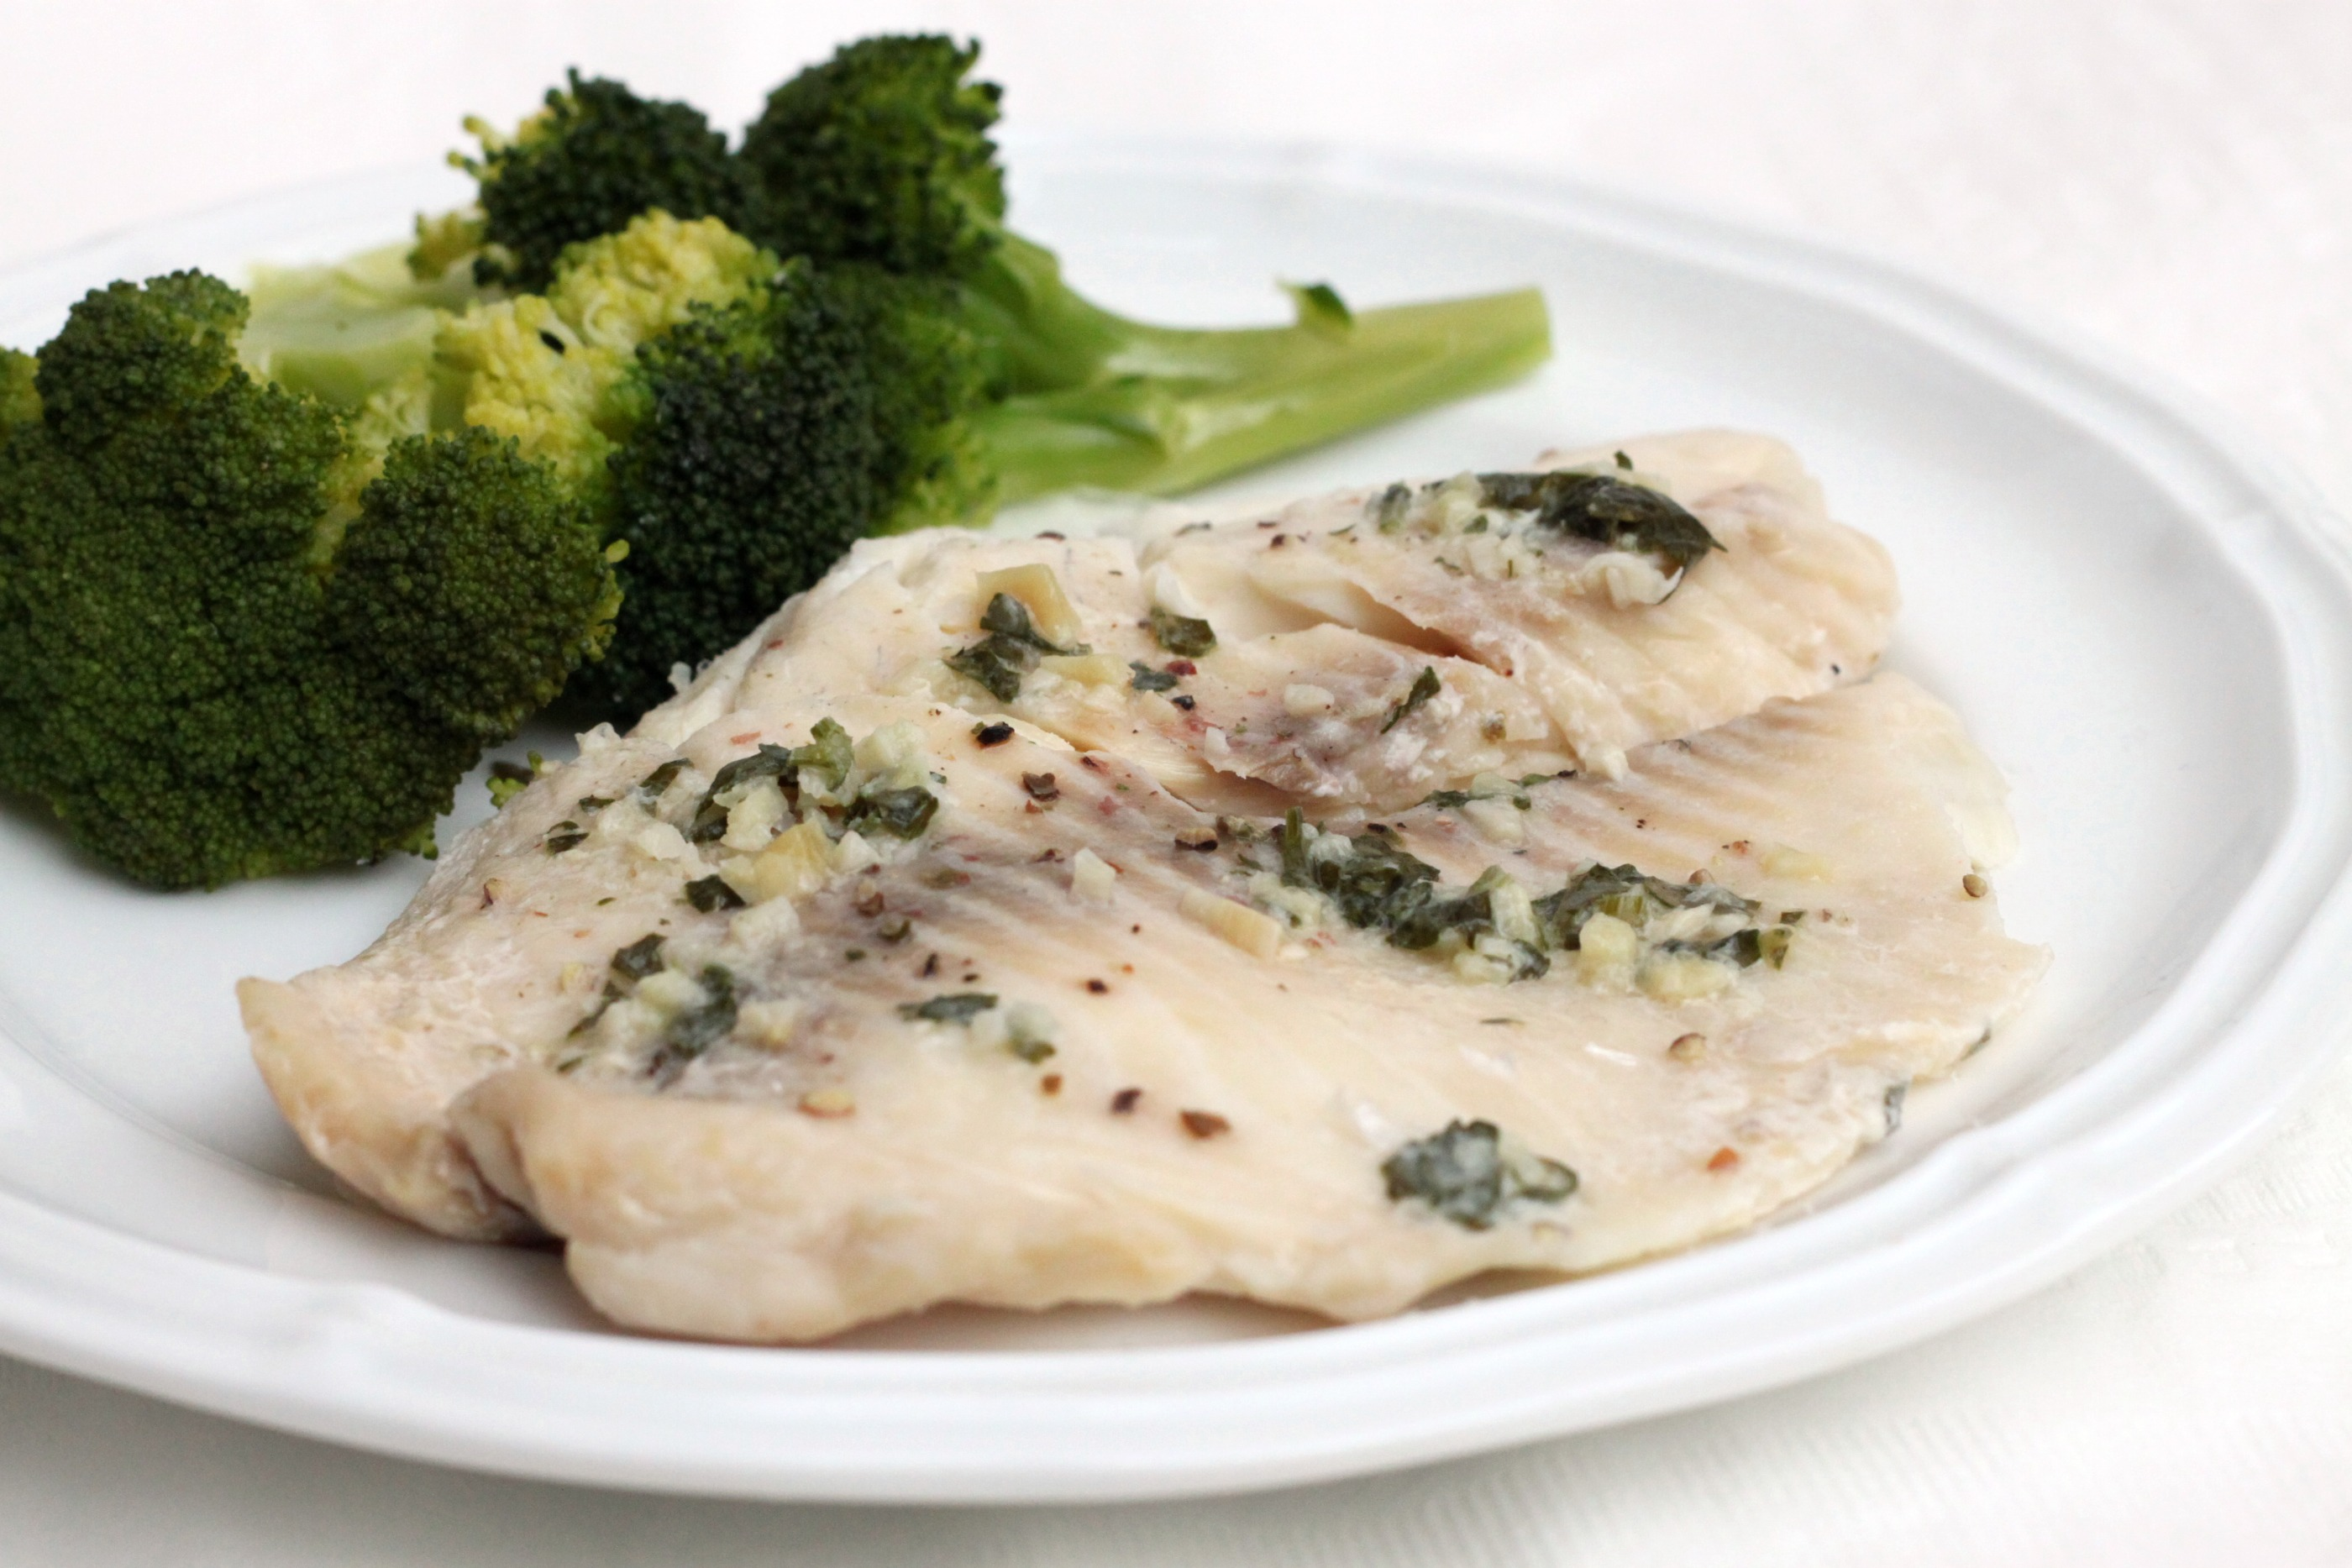 Slow cooker garlic butter tilapia 52 kitchen adventures for How to bake tilapia fish